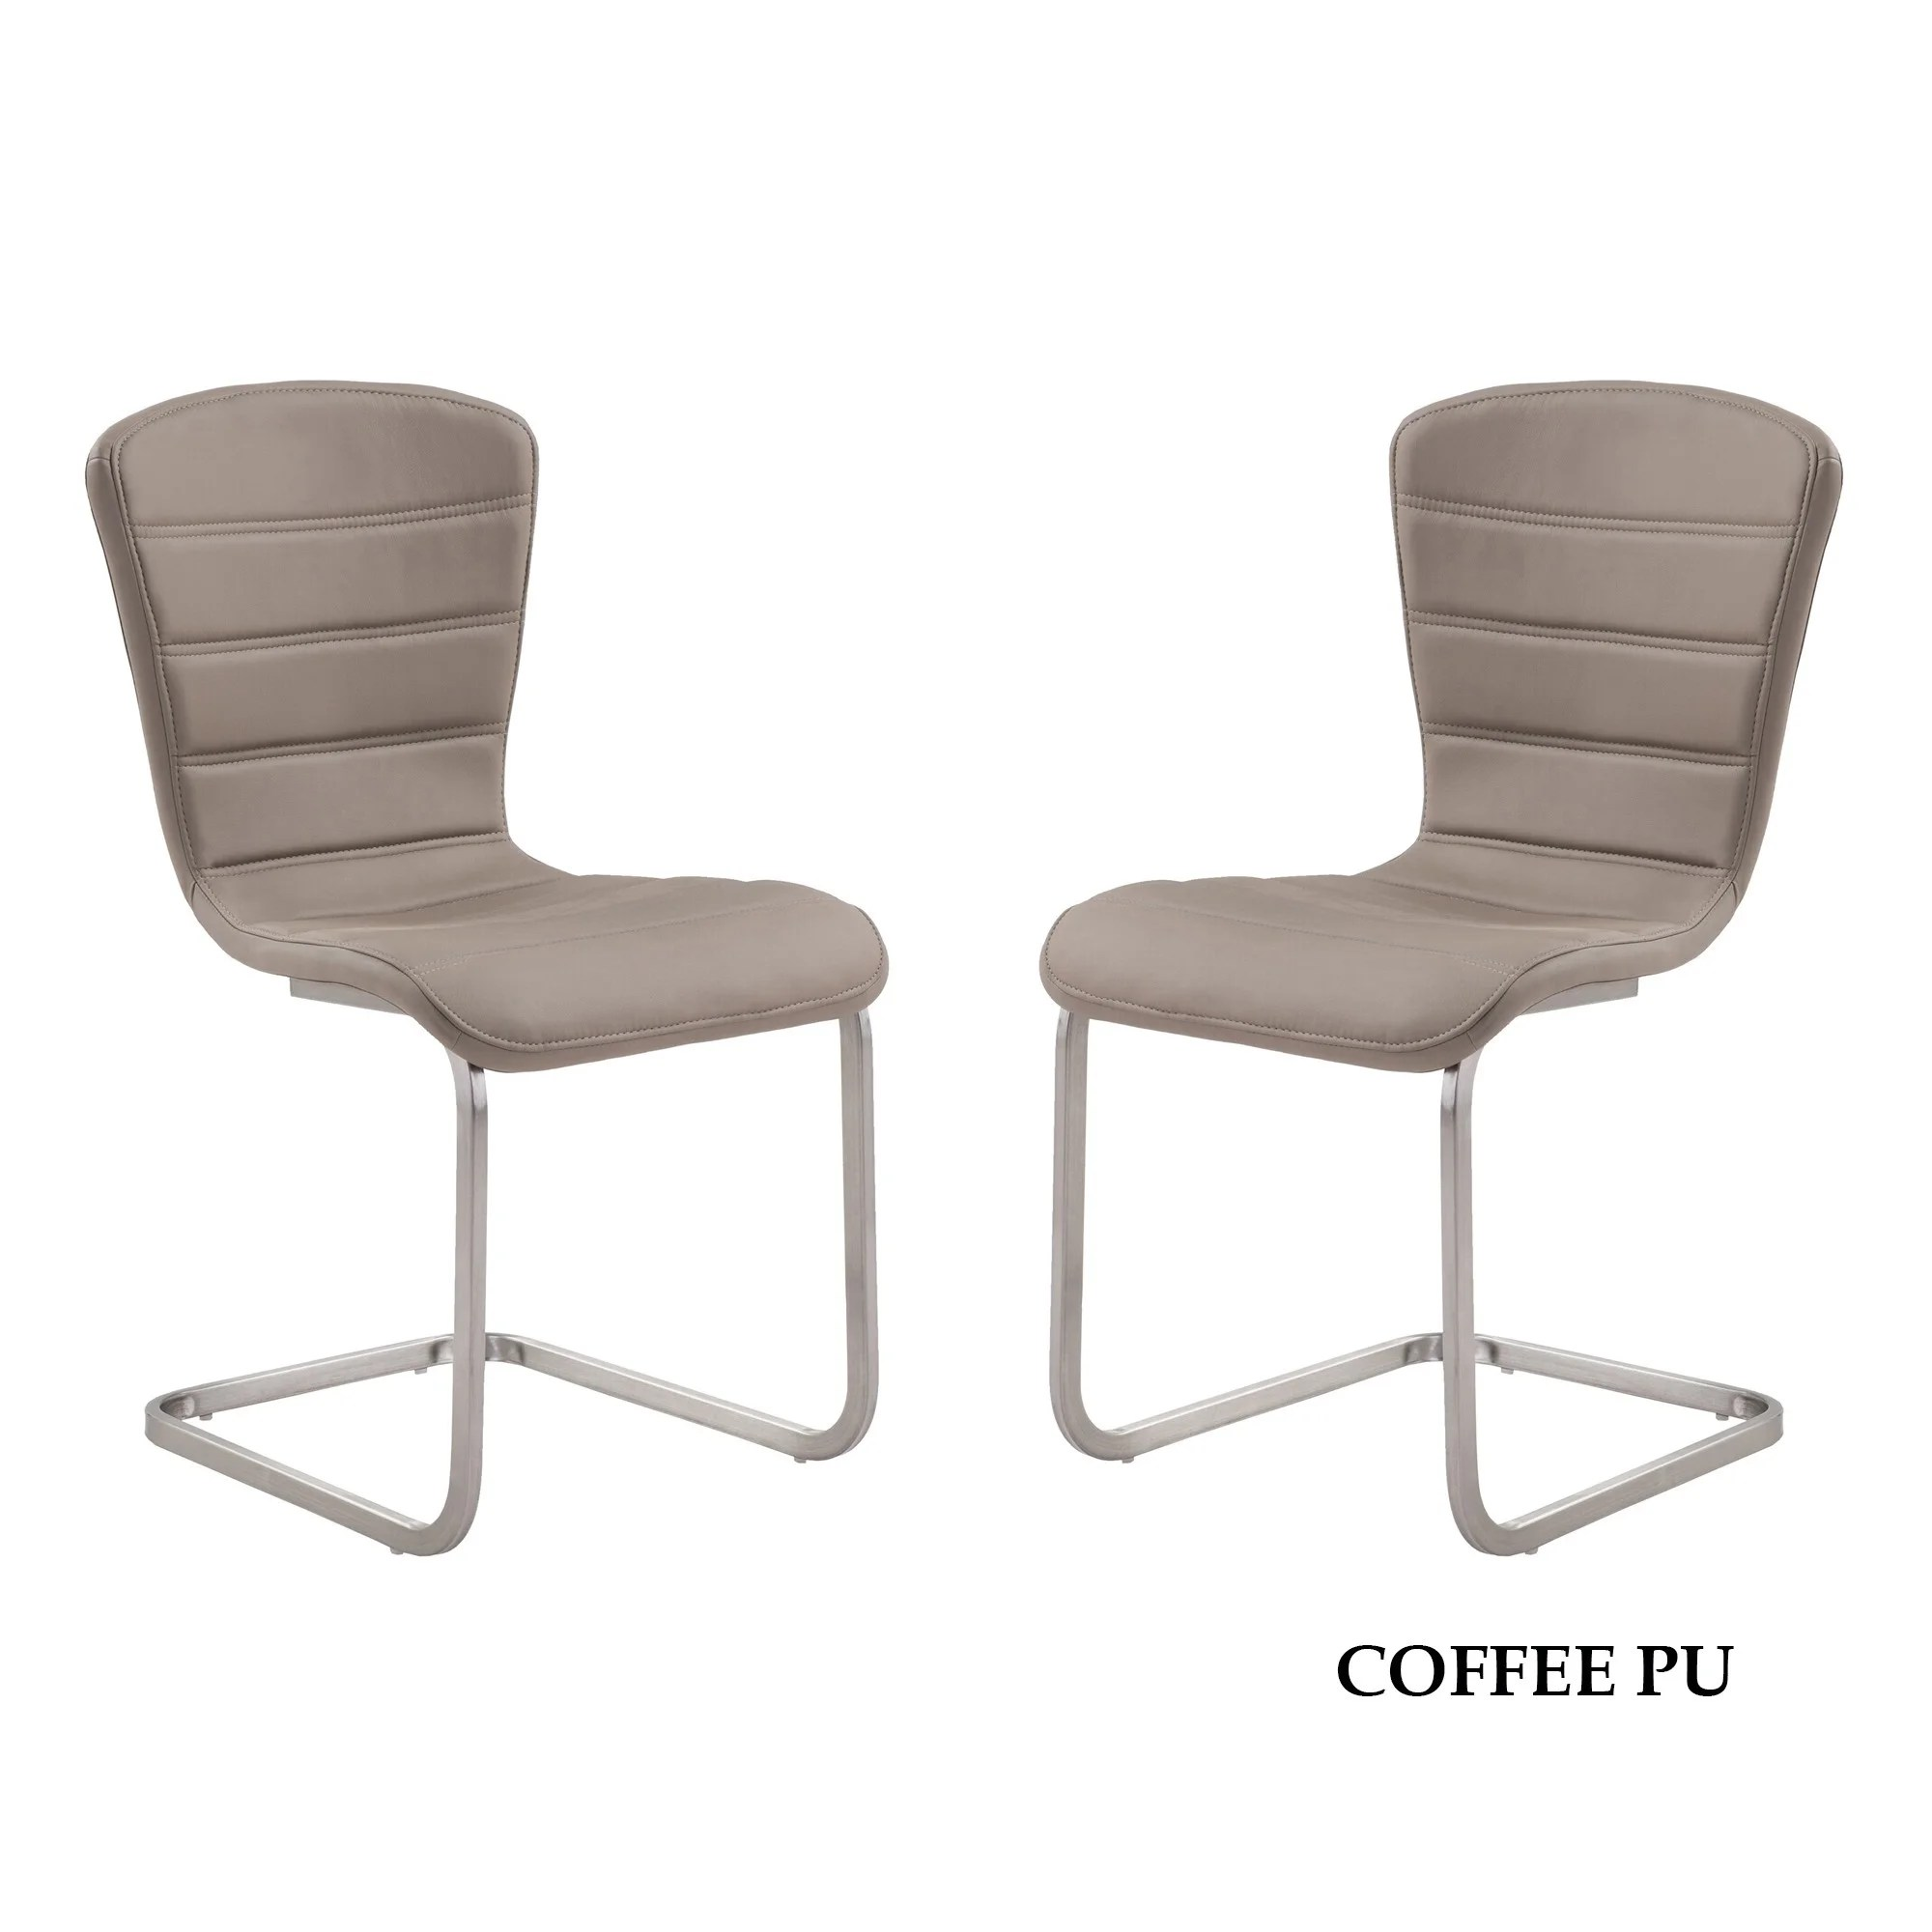 dining chairs with stainless steel legs plastic chair covers walmart cameo contemporary coffee leatherette